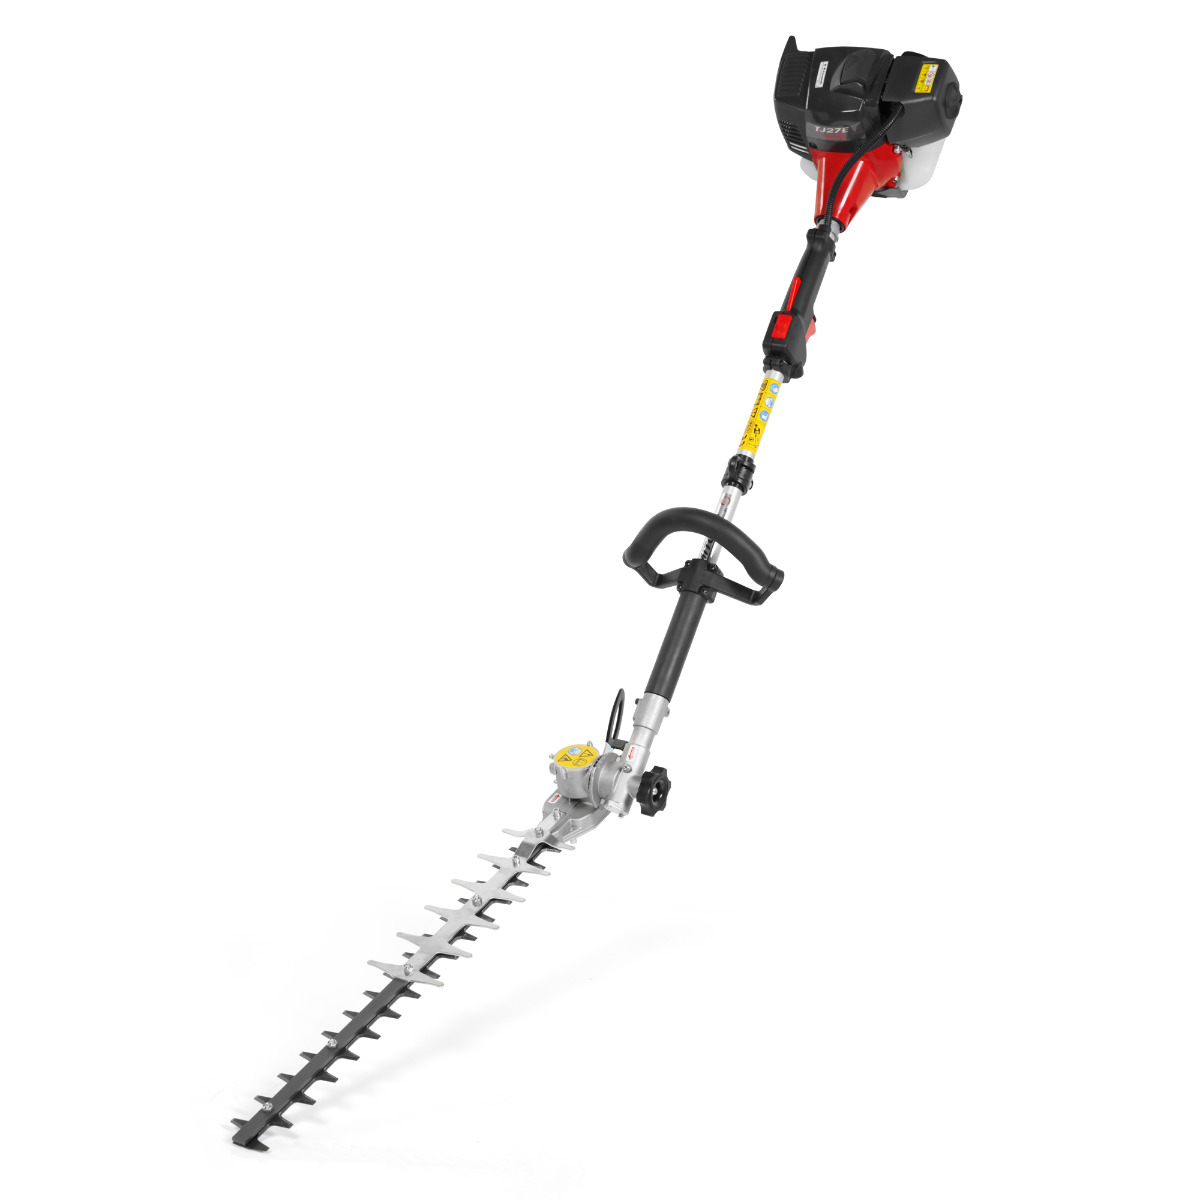 Mitox 5250SRK Pro Long Reach Hedge Trimmer